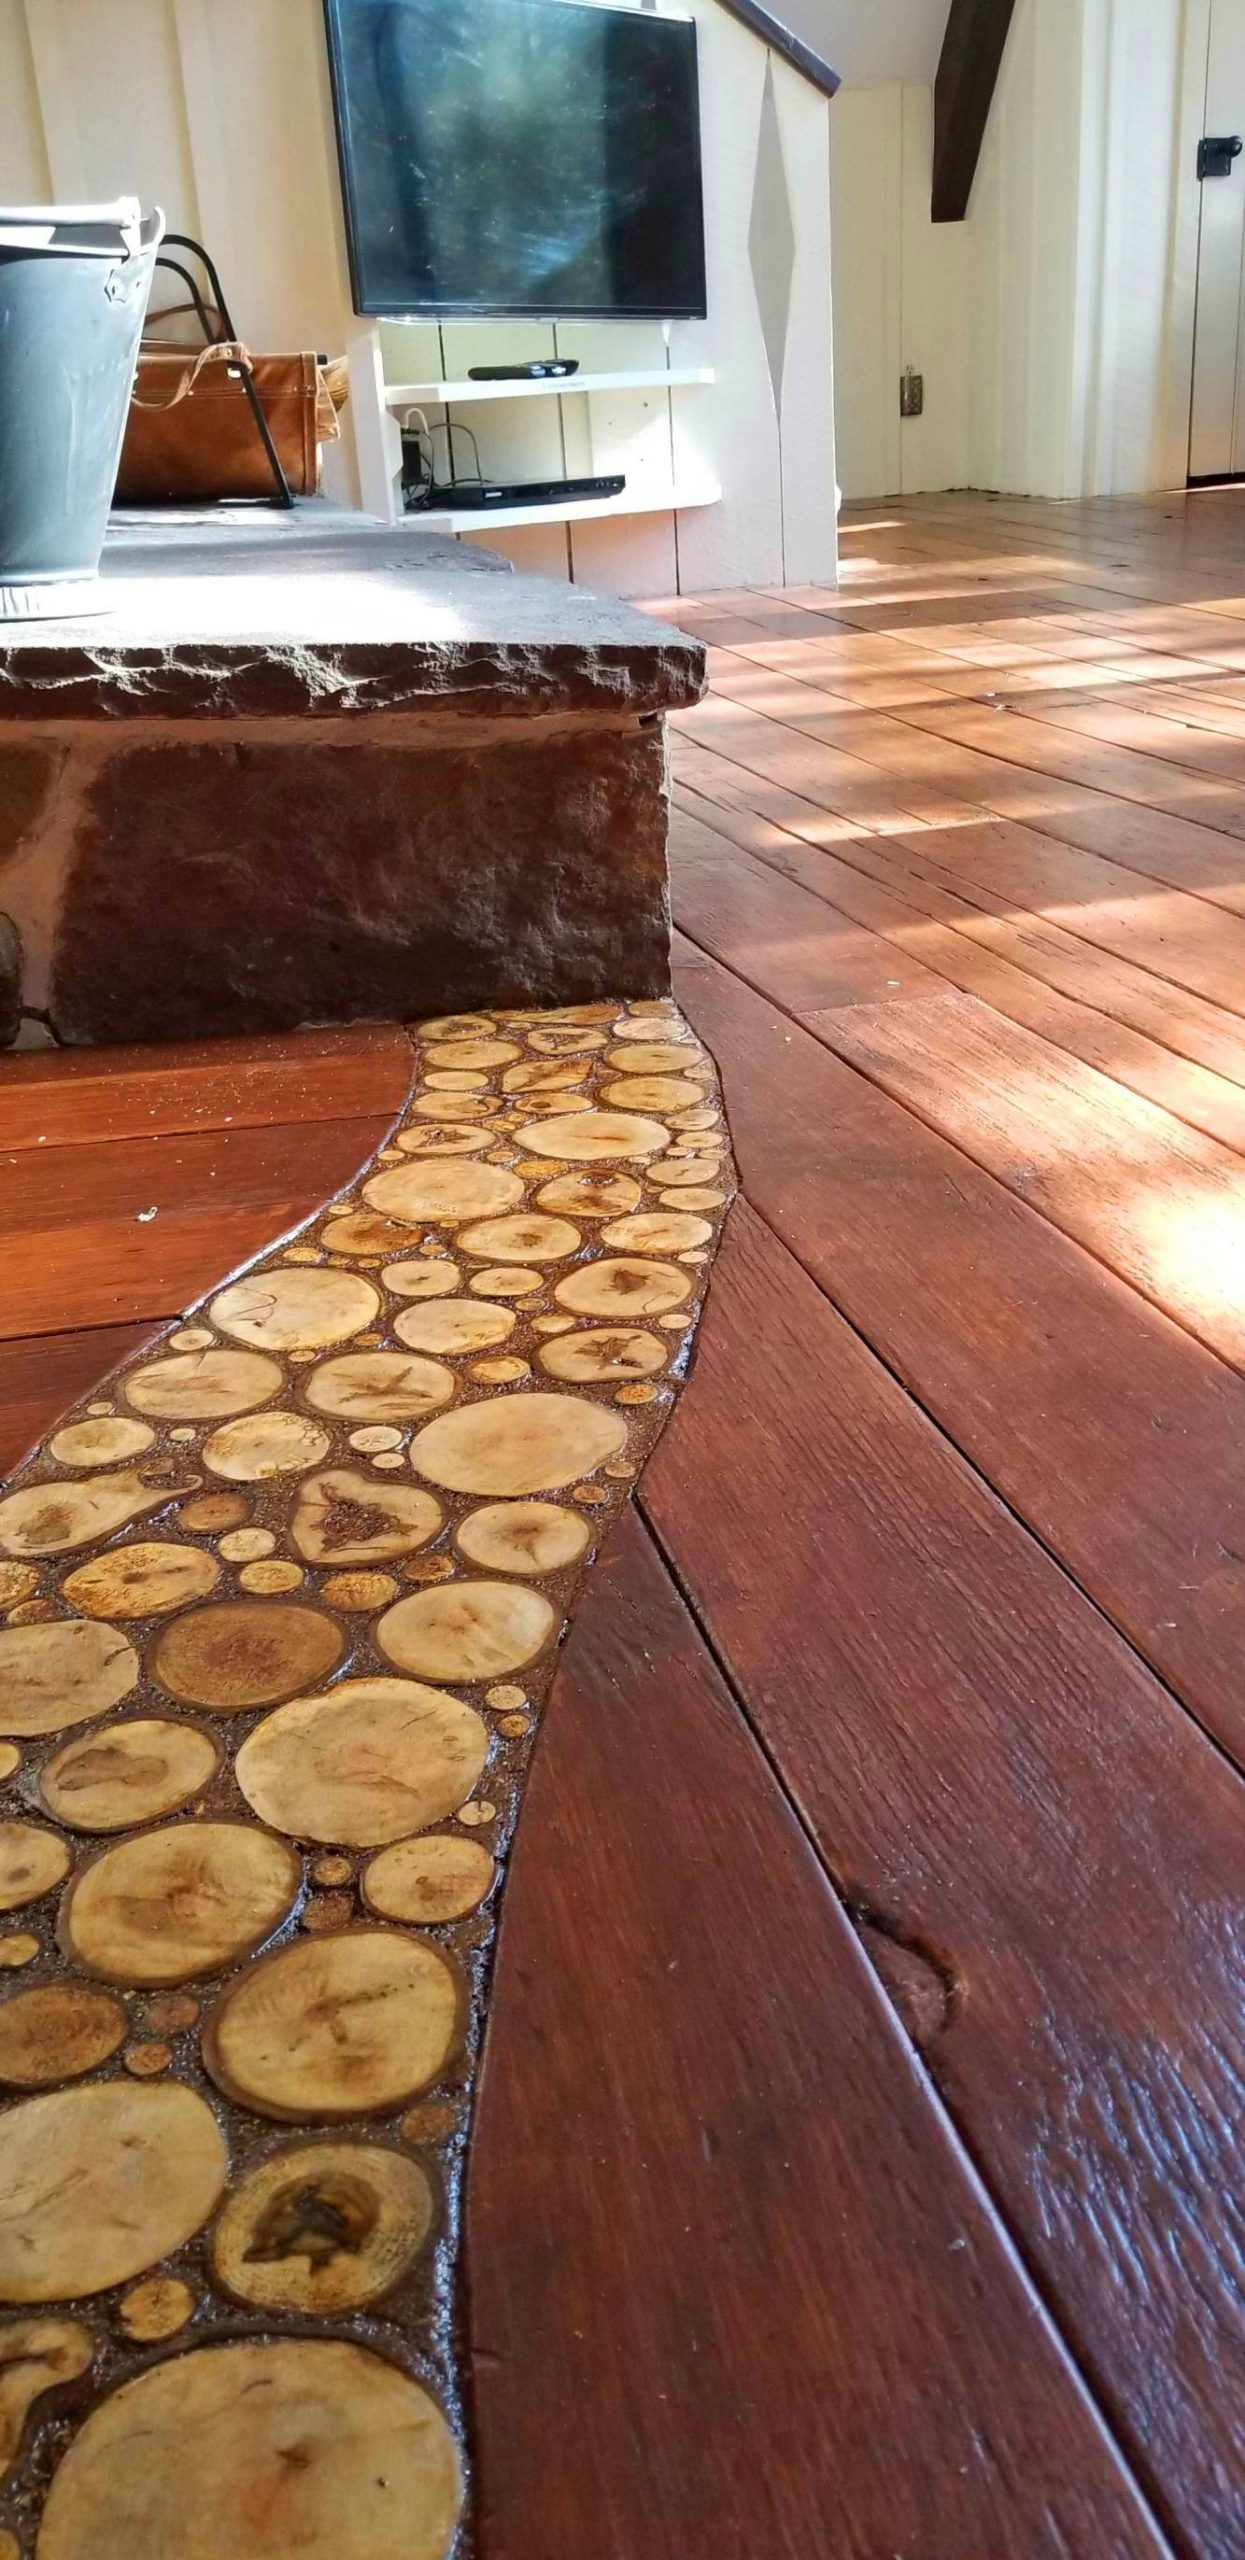 Installing An End Grain Flooring Inlay - End Grain flooring Inlay toward the fireplace